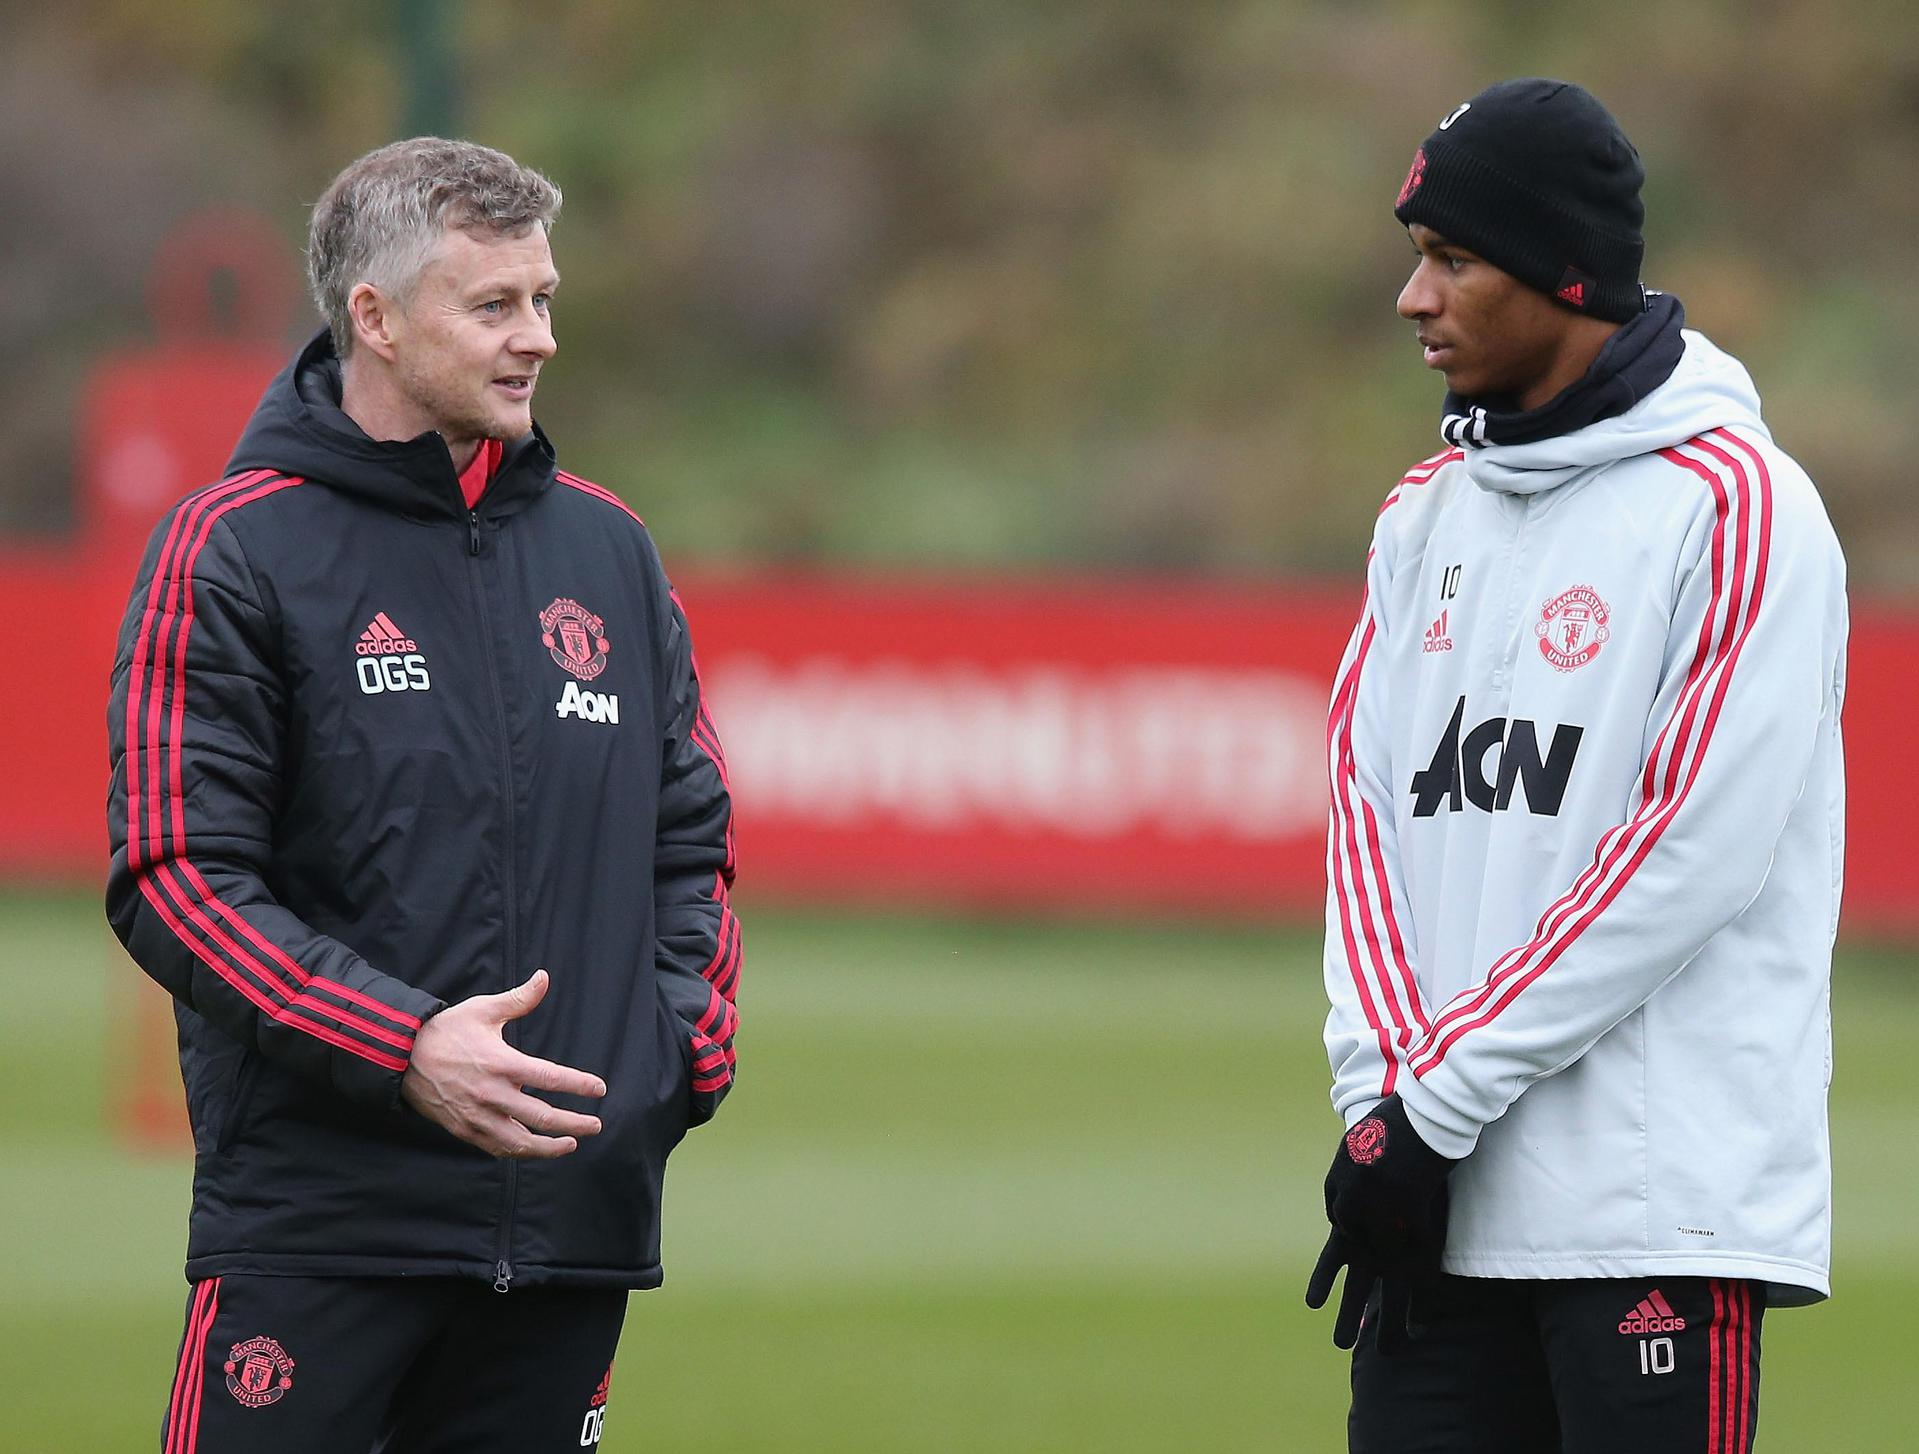 Ole Gunnar Solskjaer and Marcus Rashford.